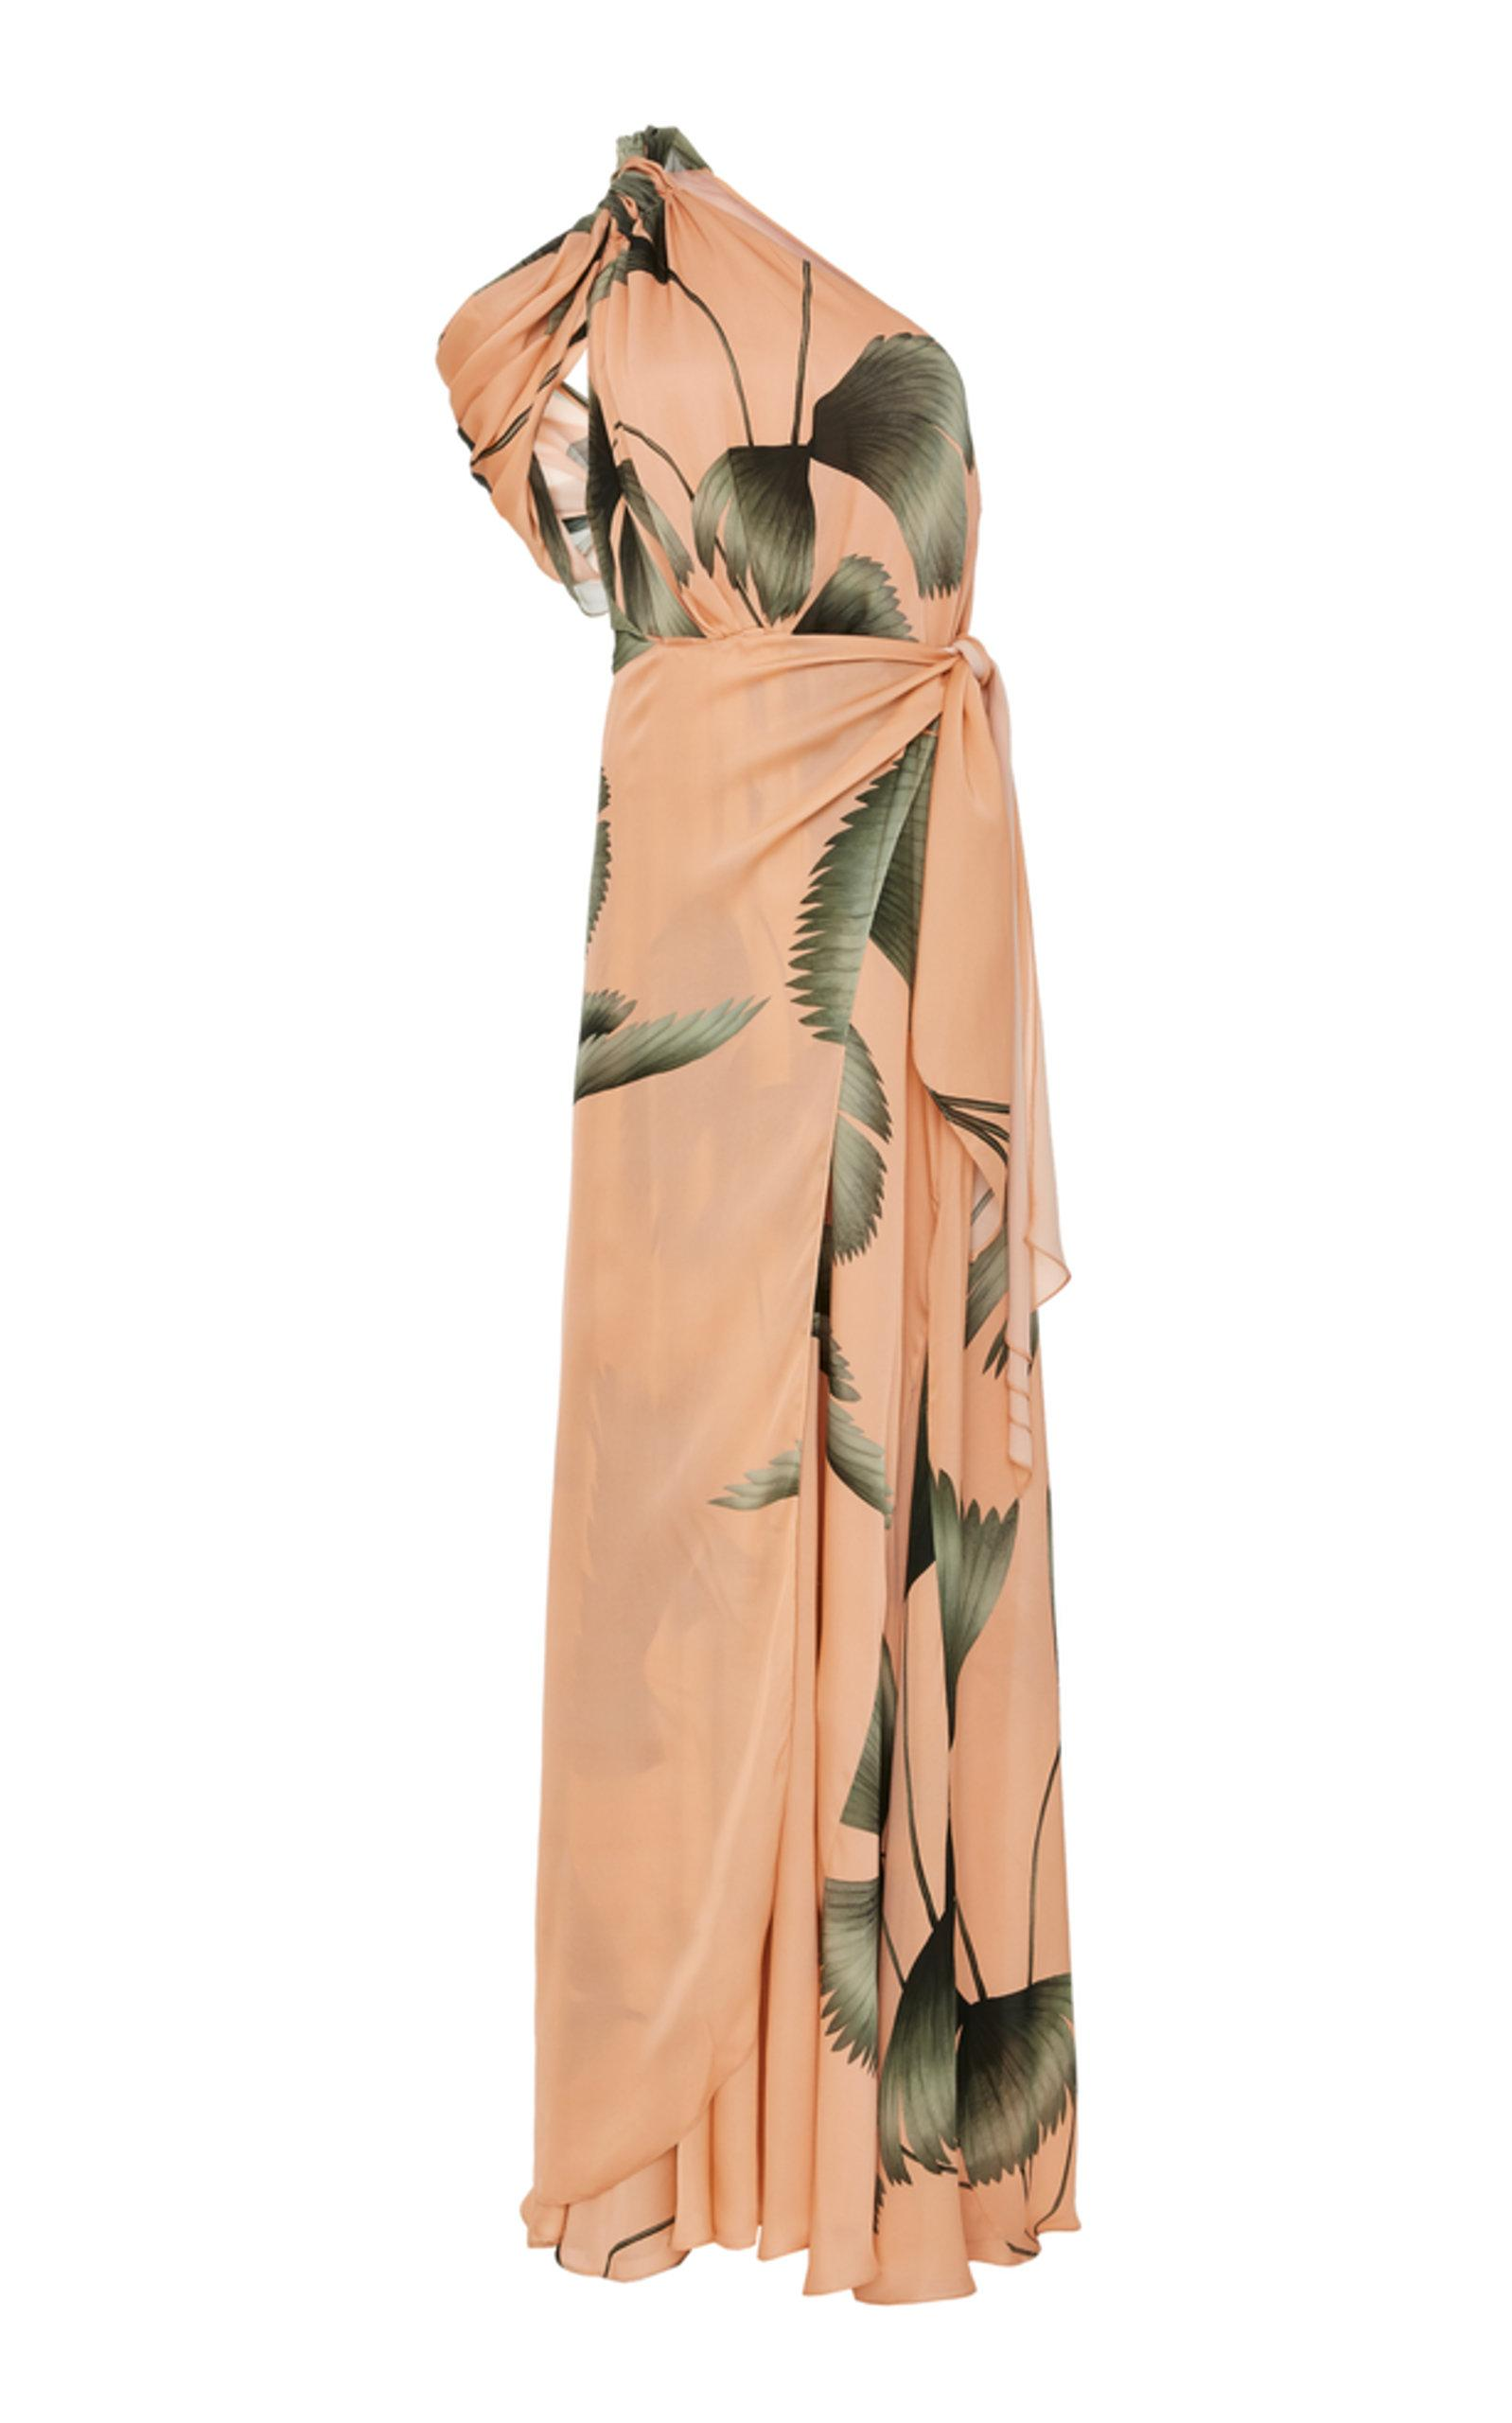 e81a7626818 Johanna Ortiz St Barthelemy Silk Georgette Dress In Print